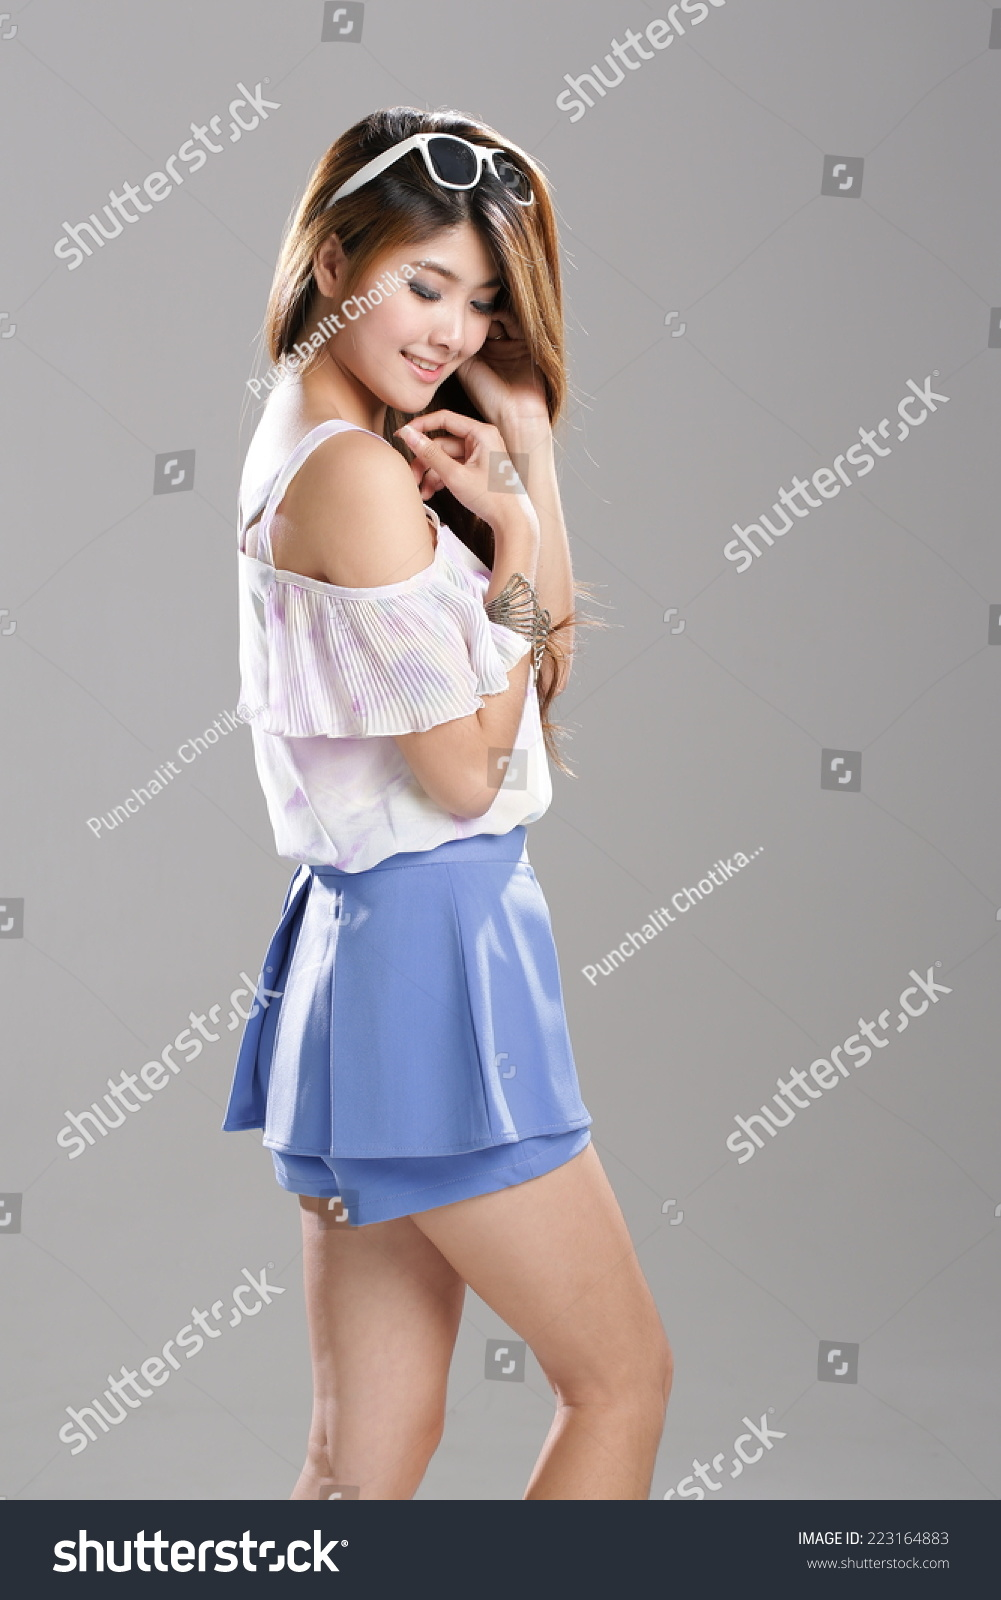 Asian Girl Posing In Sexy White Shade Lady Singlet Top With Blue Skirt Shorts